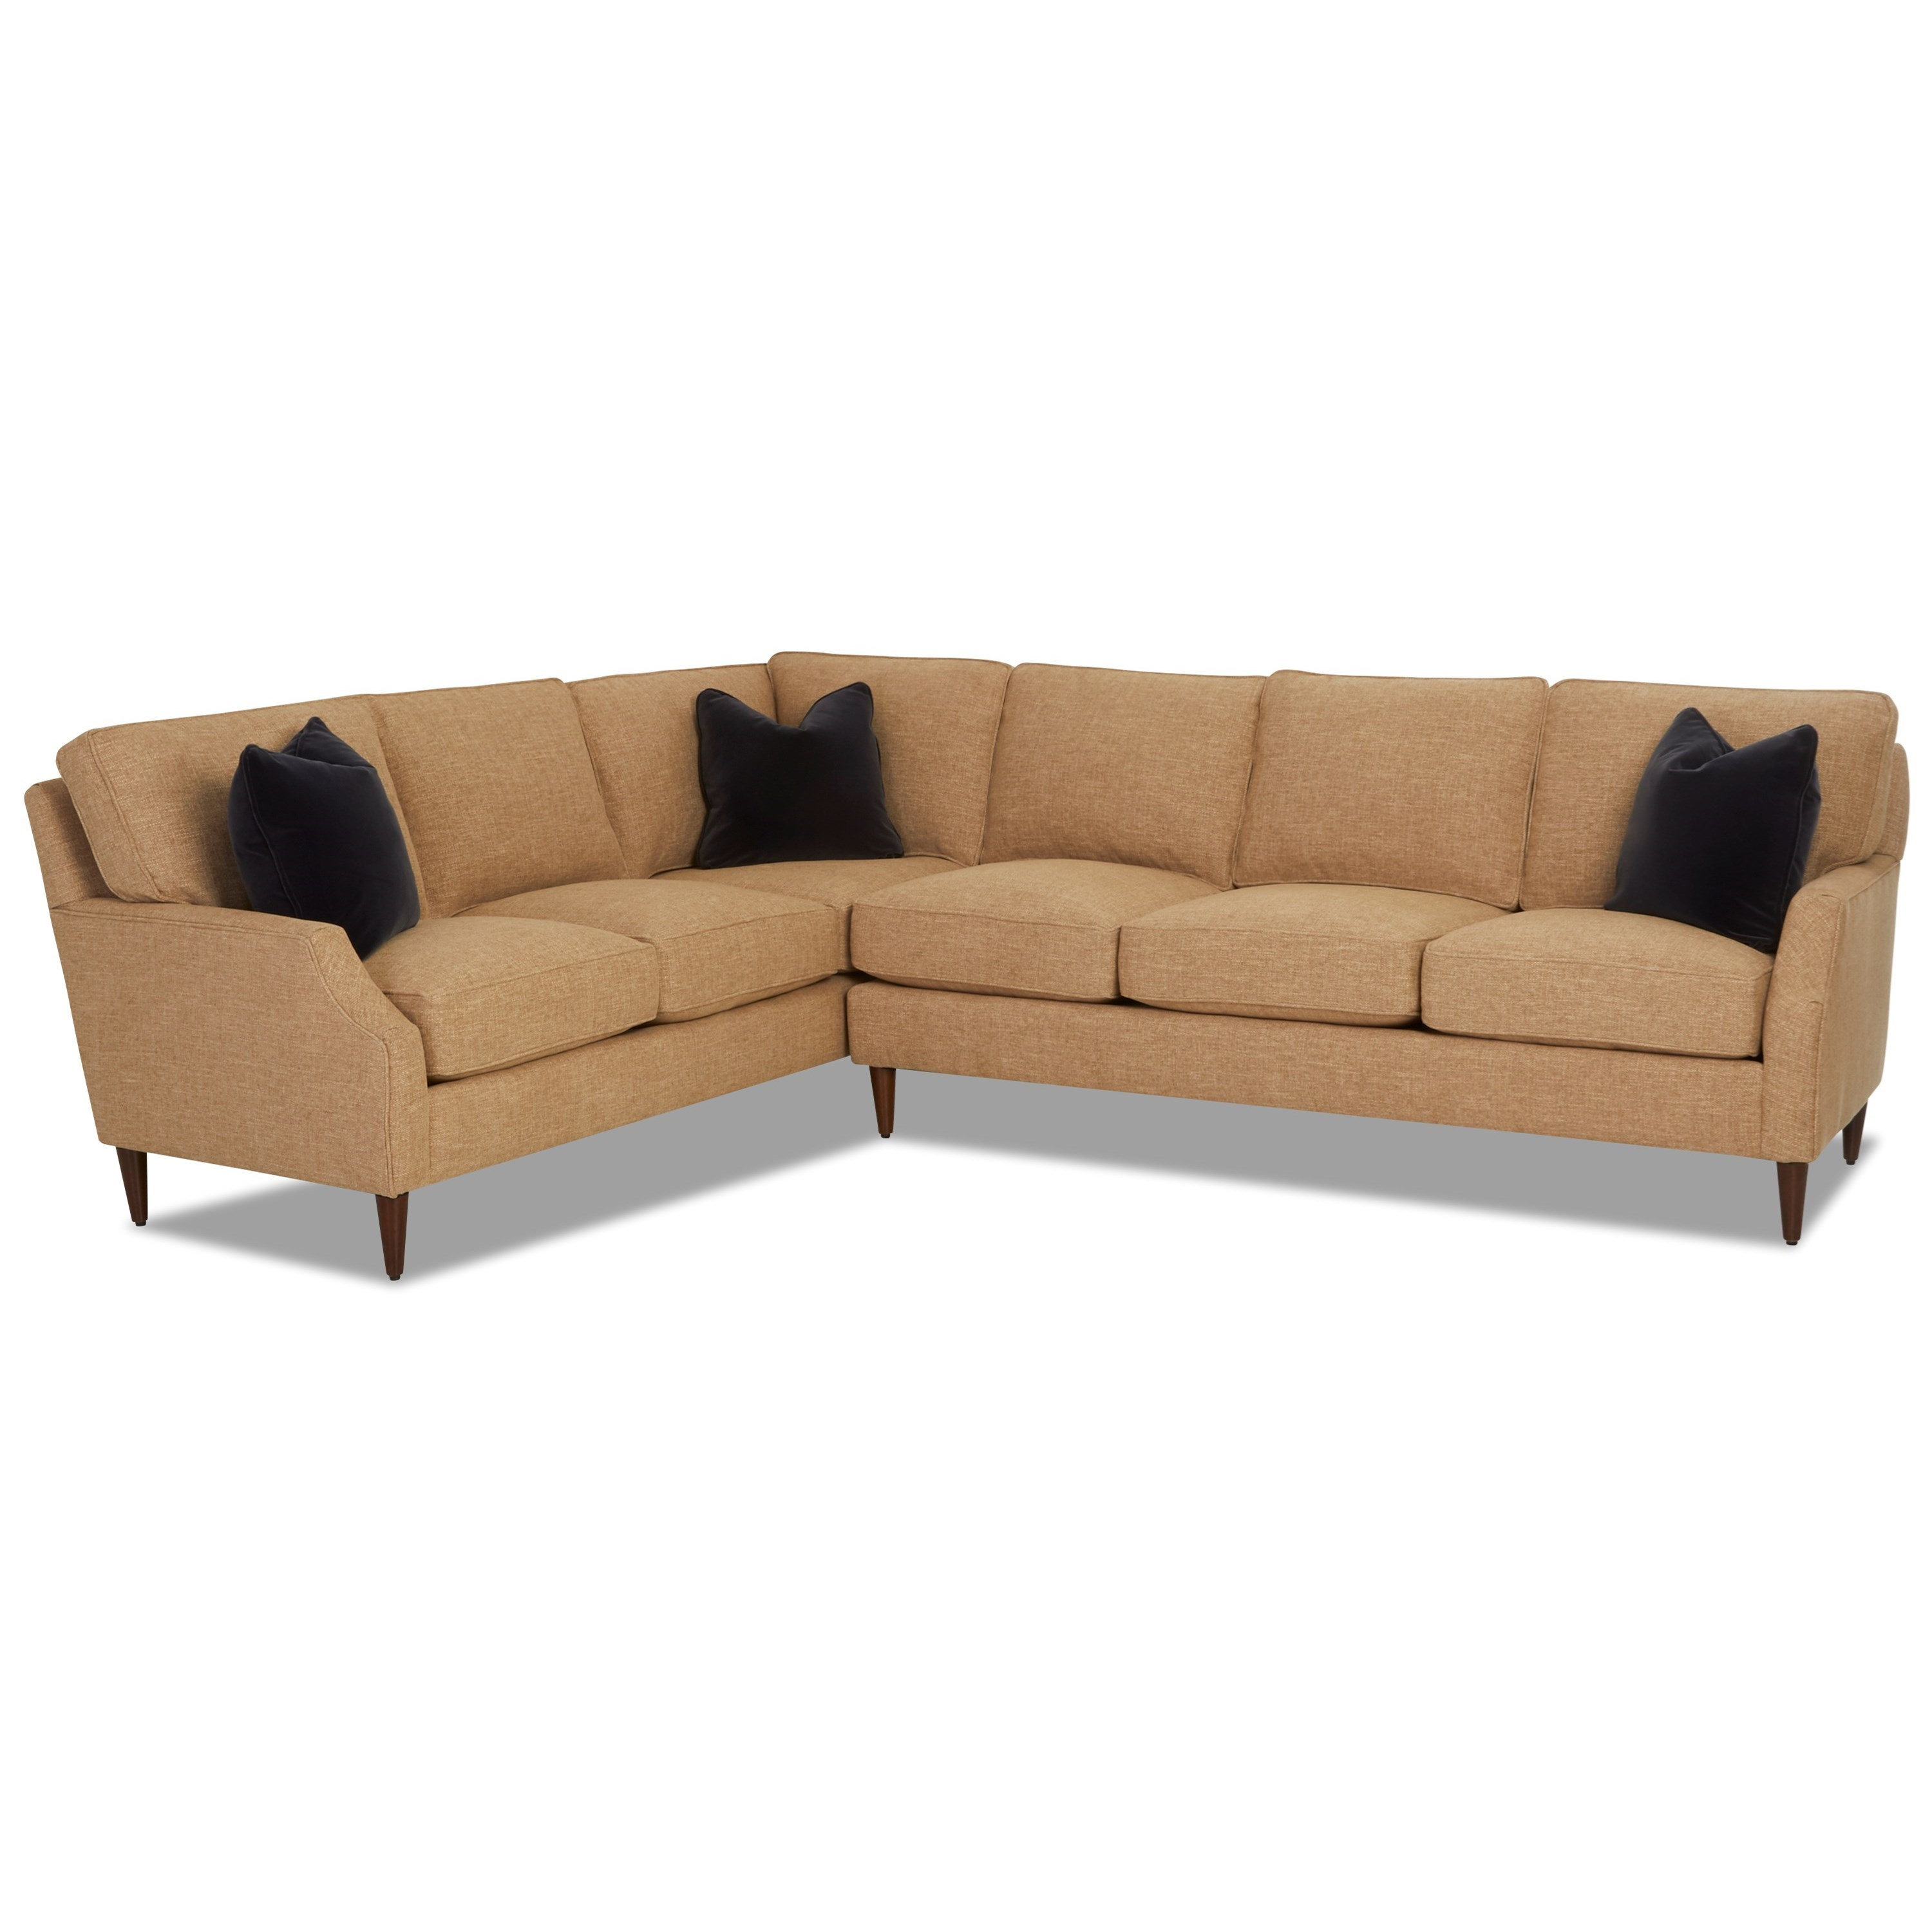 Grammercy 2-Piece Sectional by Klaussner at Johnny Janosik